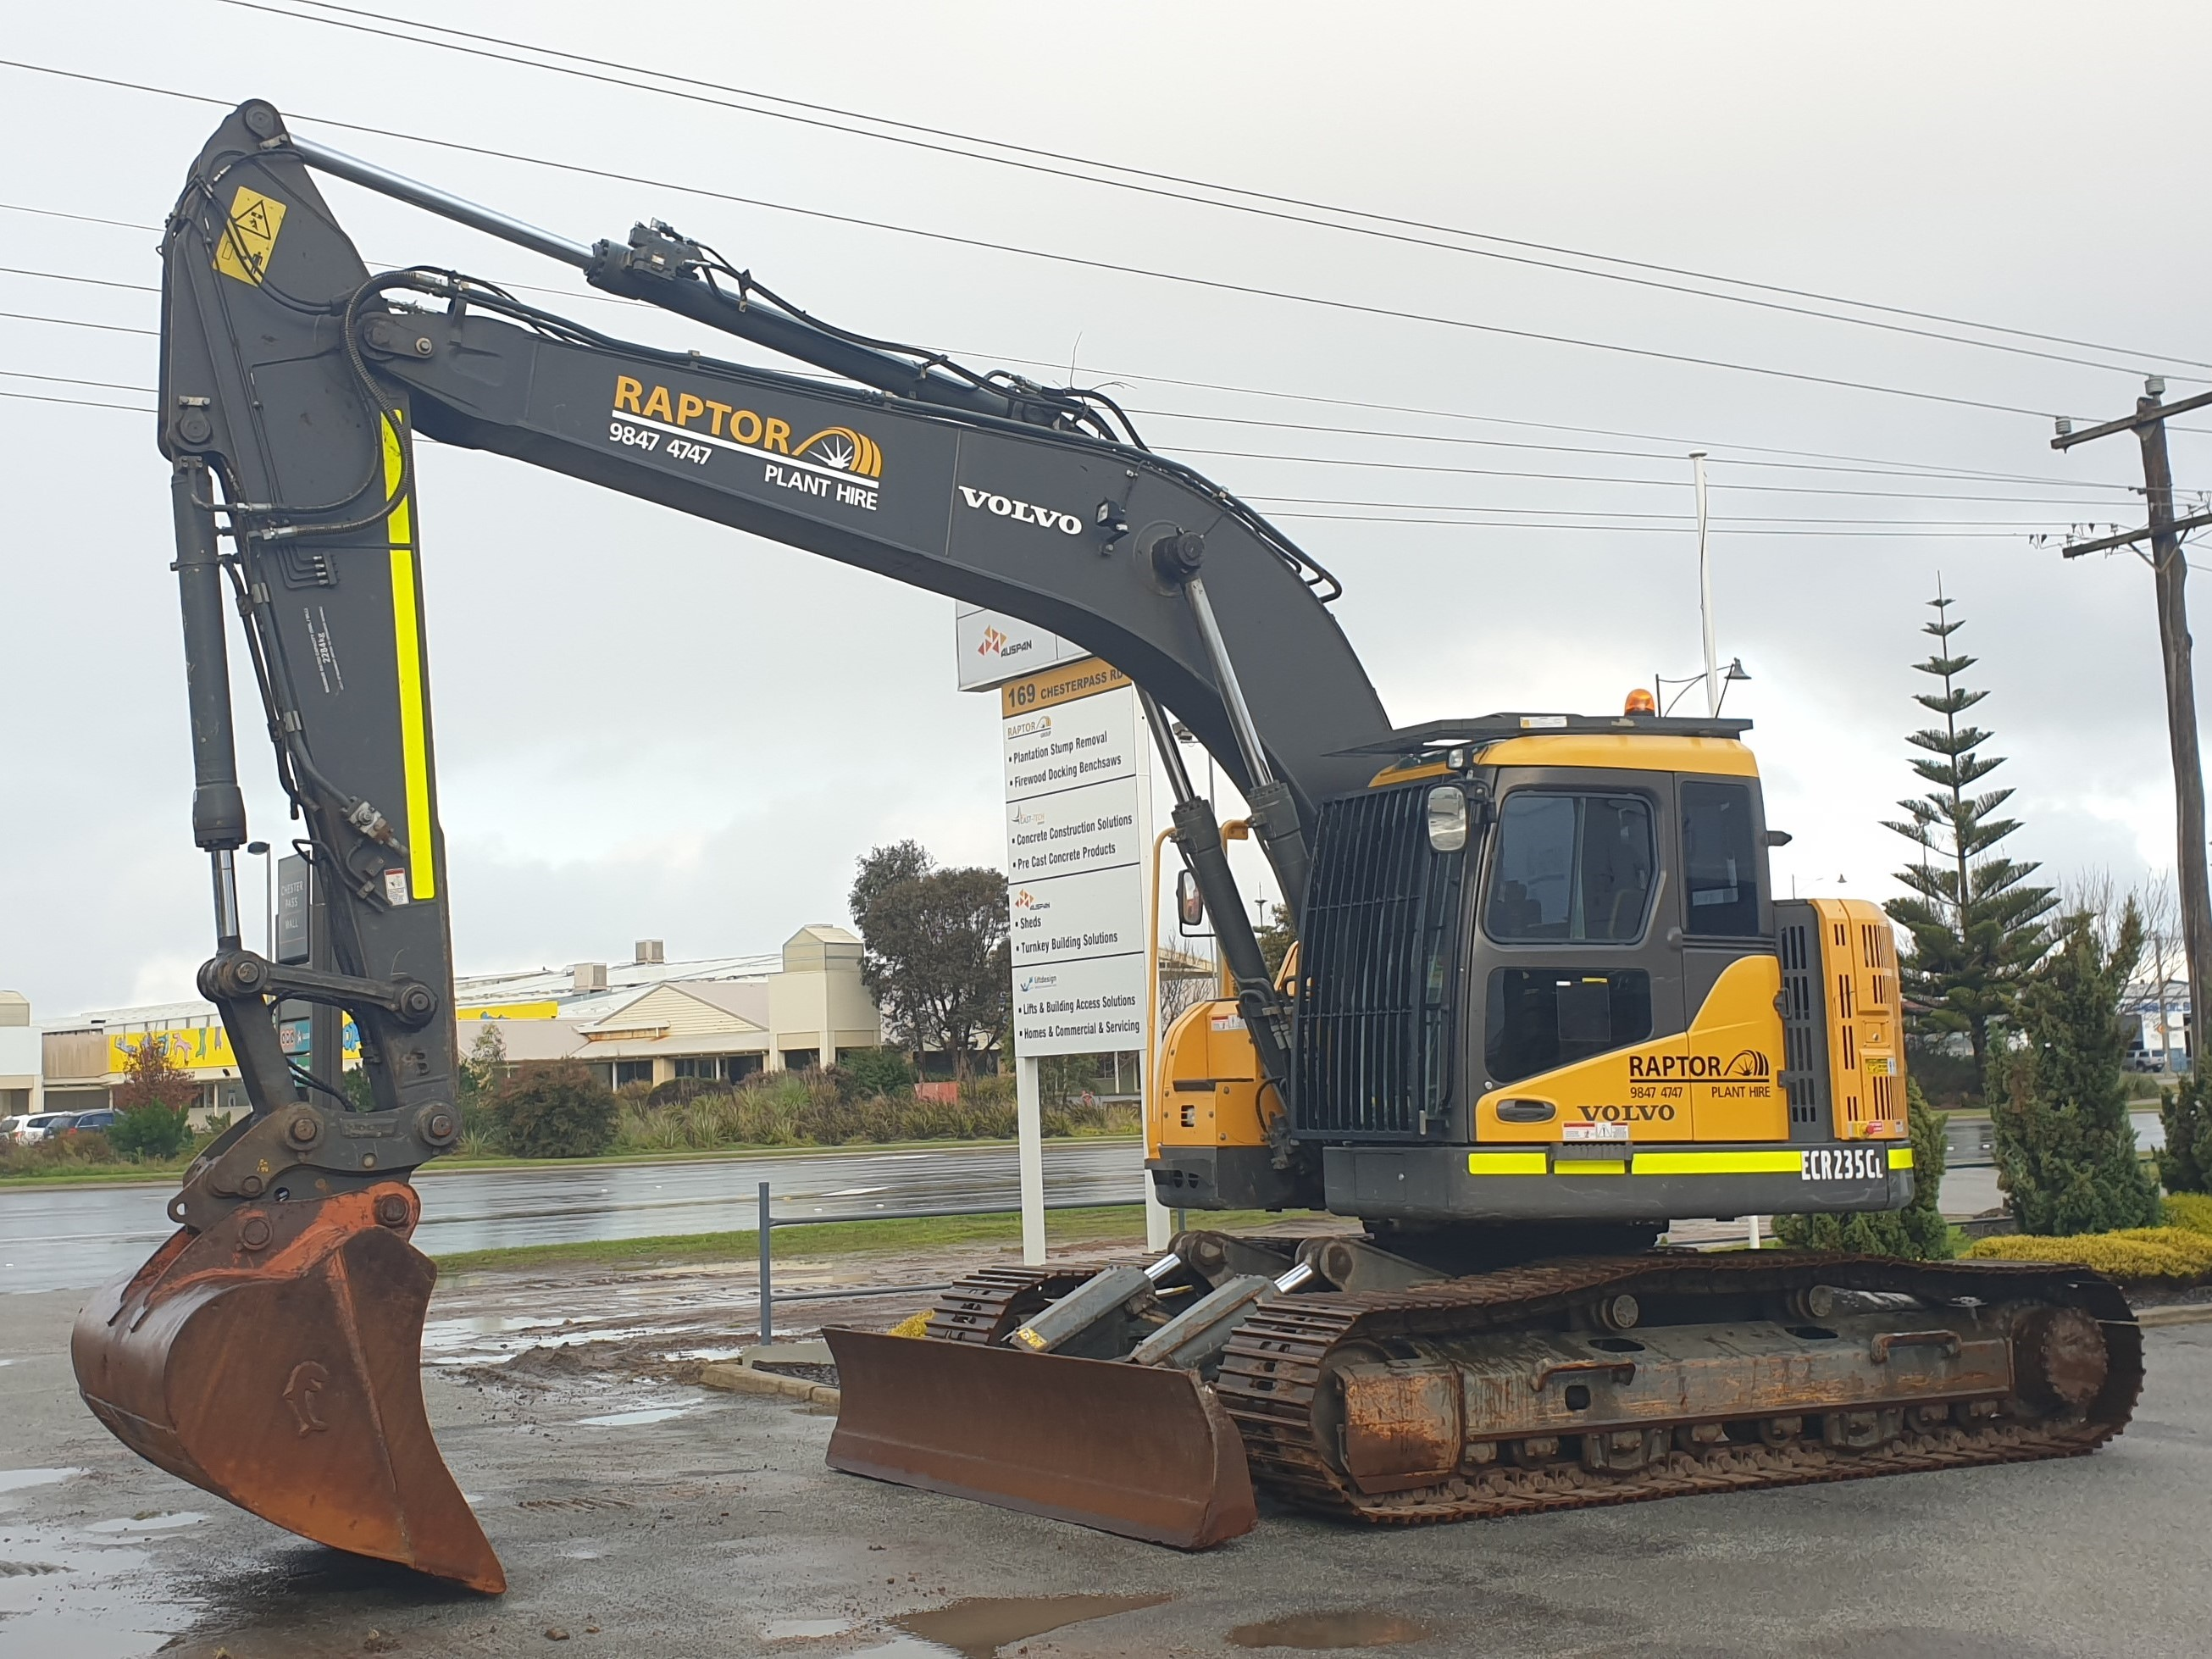 {alt=ZERO SWING 26T EXCAVATOR FOR HIRE-May-26-2021-02-24-51-92-AM, height=1958, max_height=1958, max_width=2611, src=https://f.hubspotusercontent40.net/hubfs/4532094/ZERO%20SWING%2026T%20EXCAVATOR%20FOR%20HIRE-May-26-2021-02-24-51-92-AM.jpg, width=2611}